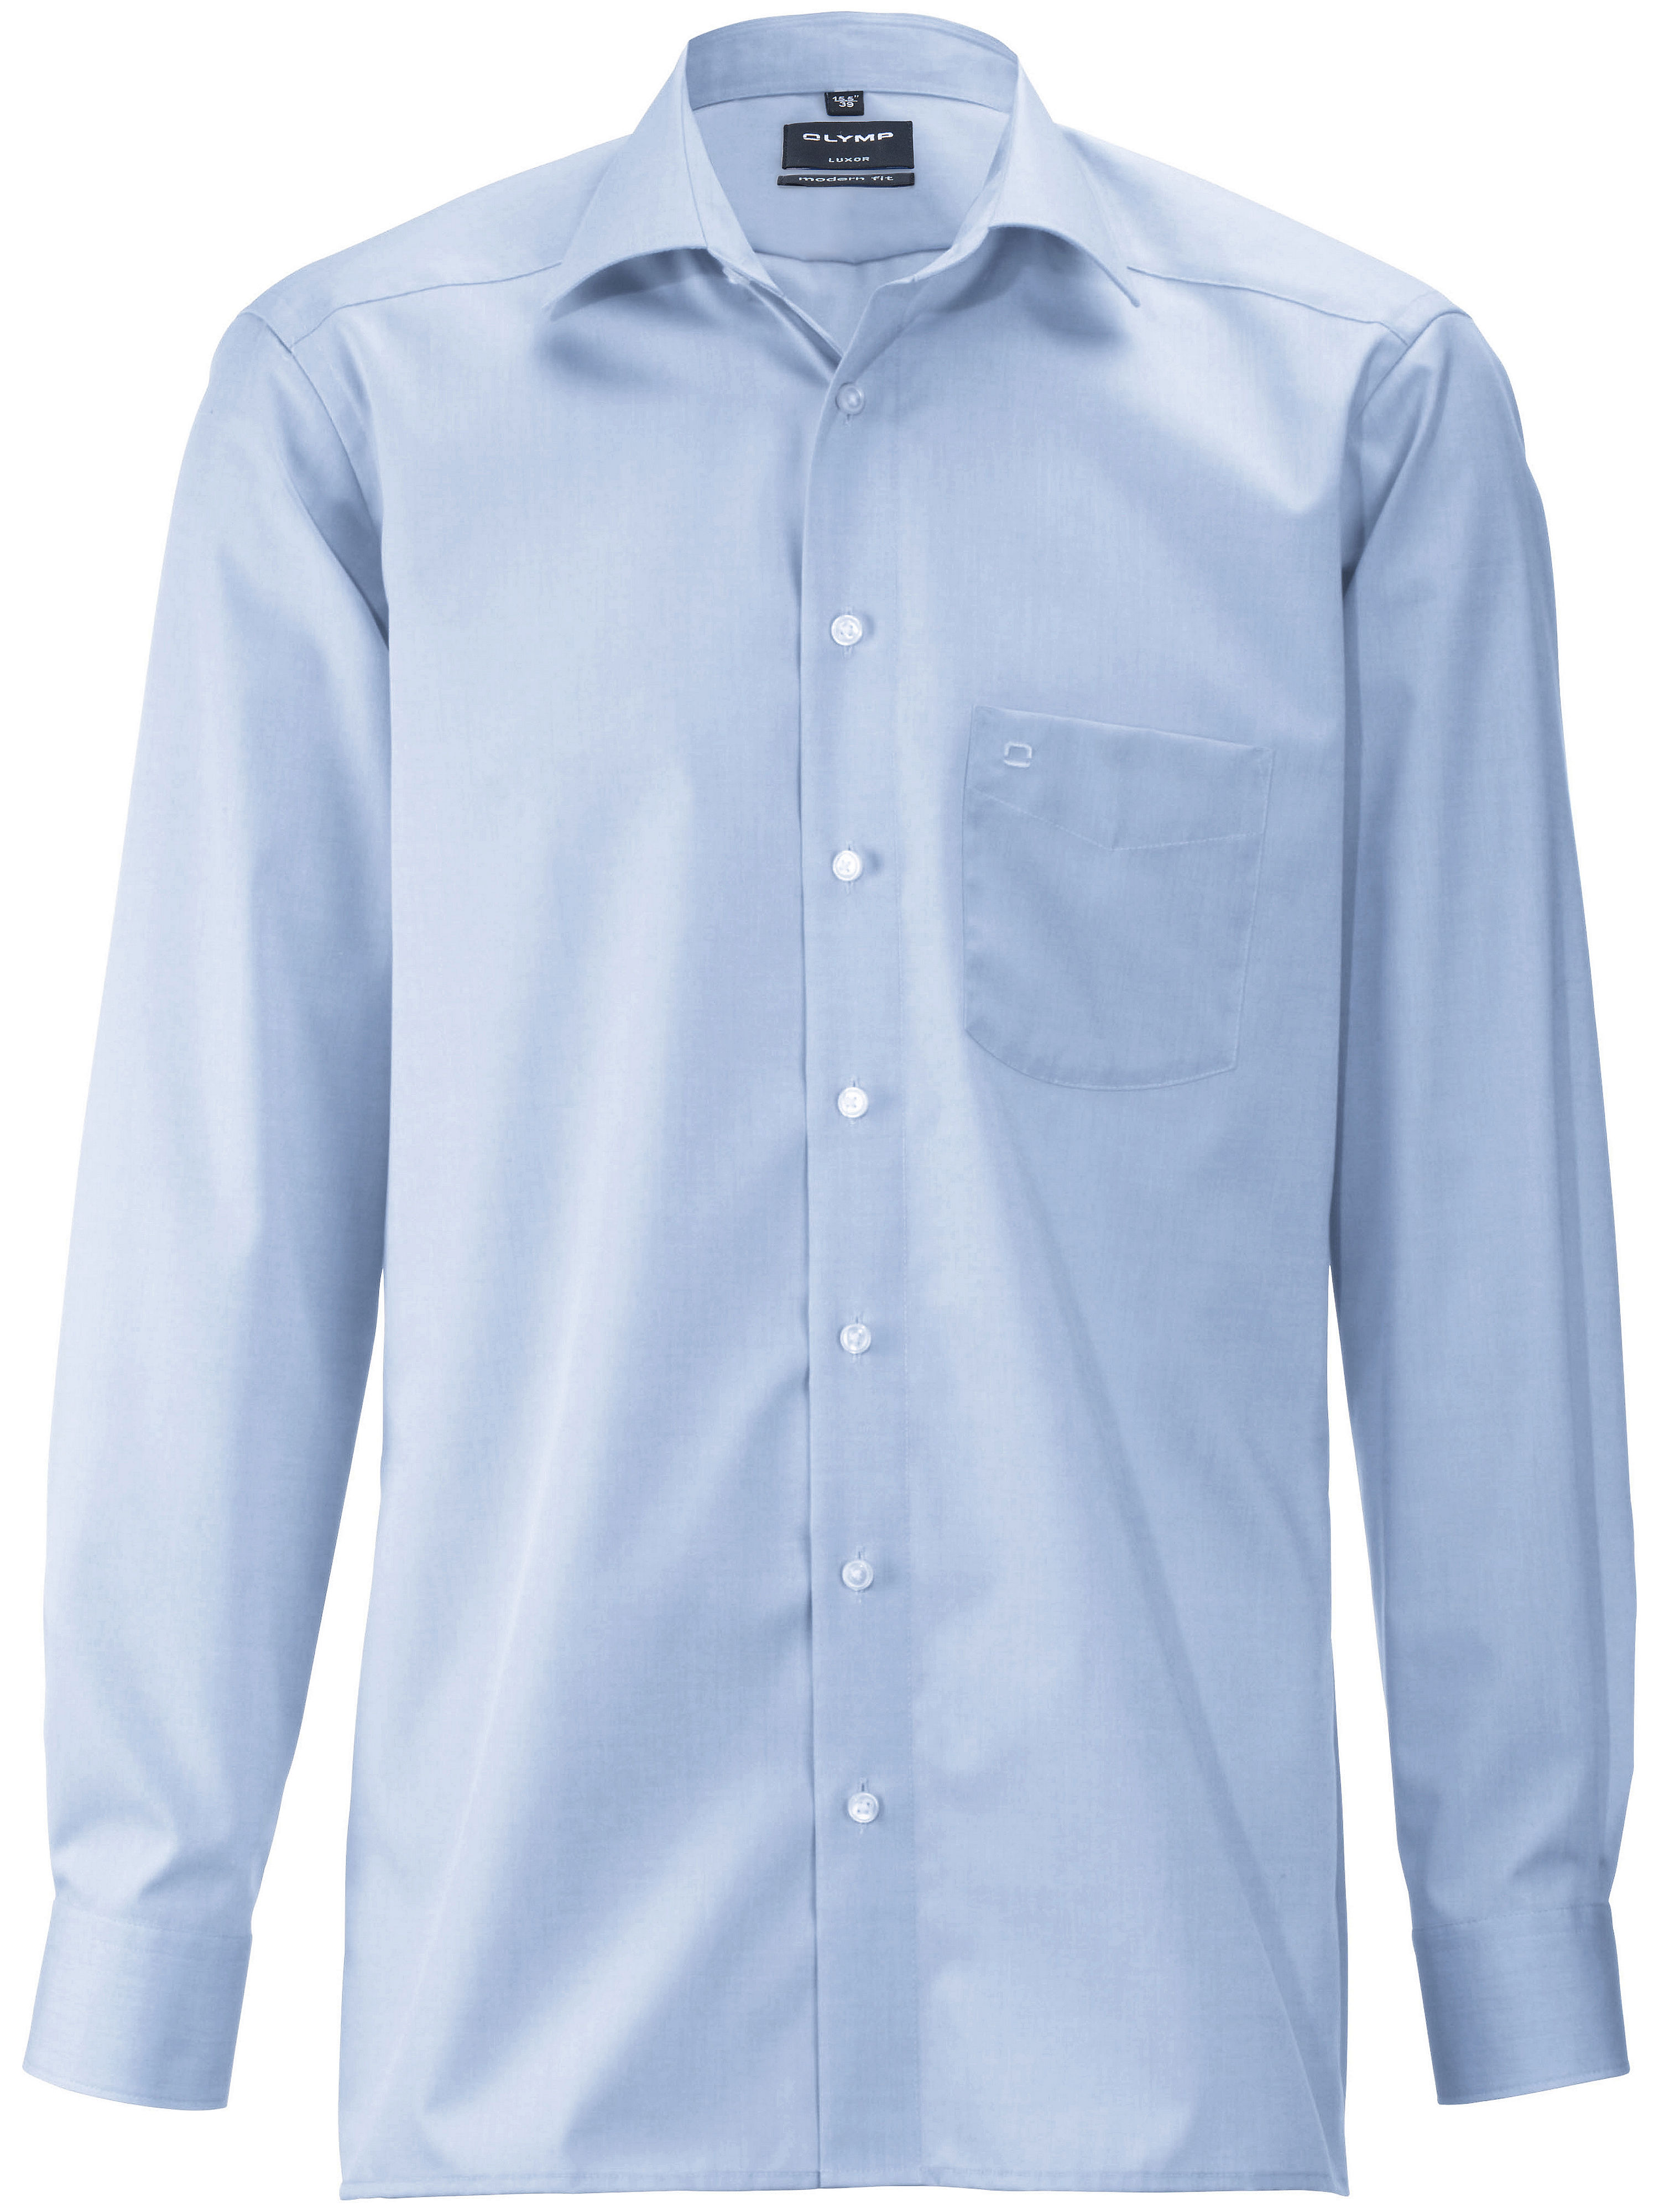 La chemise  Olymp Luxor bleu taille 40